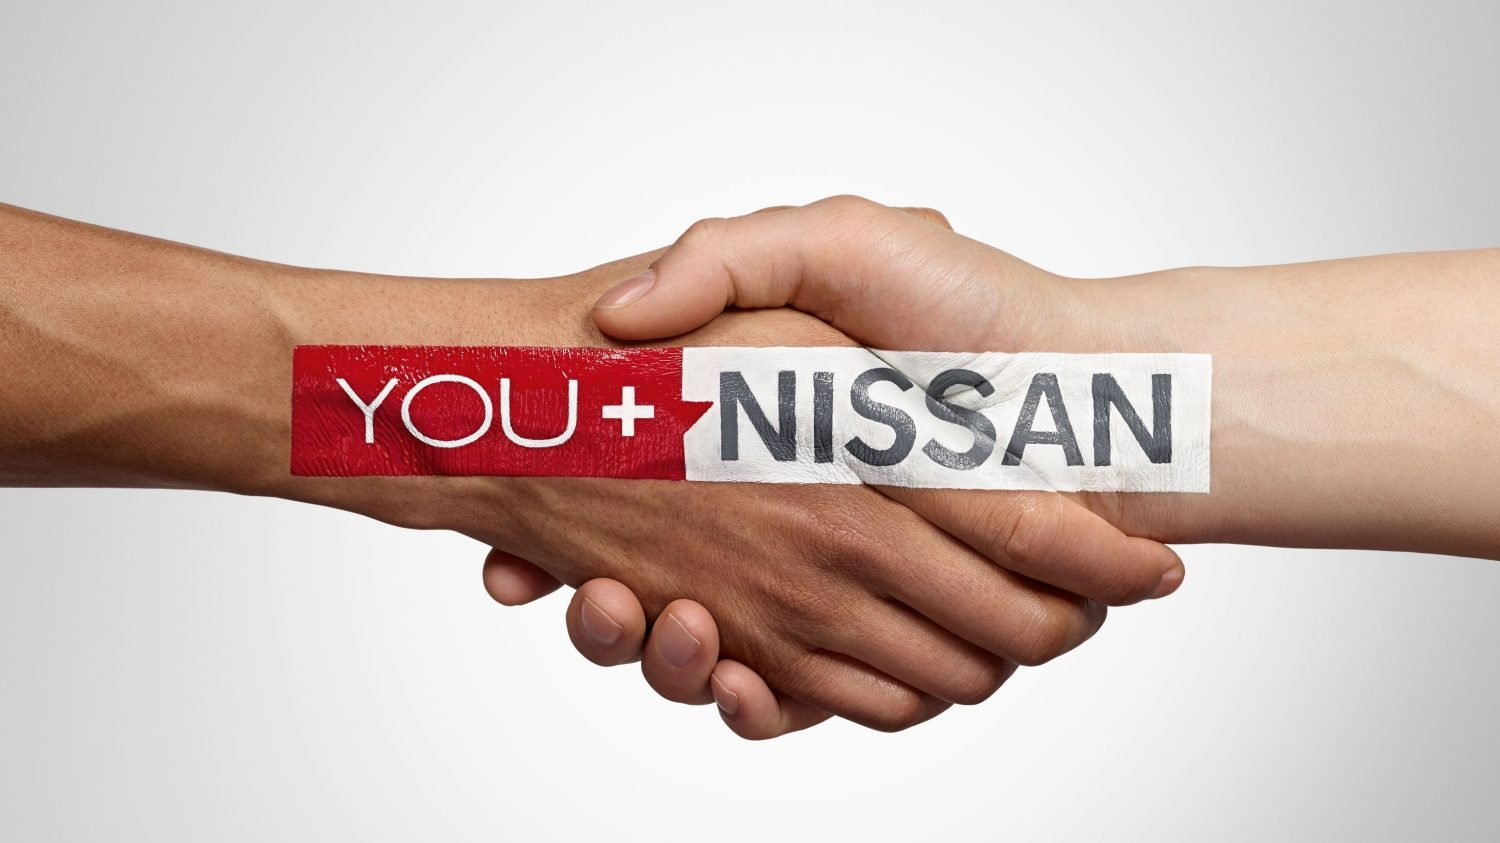 You+Nissan image